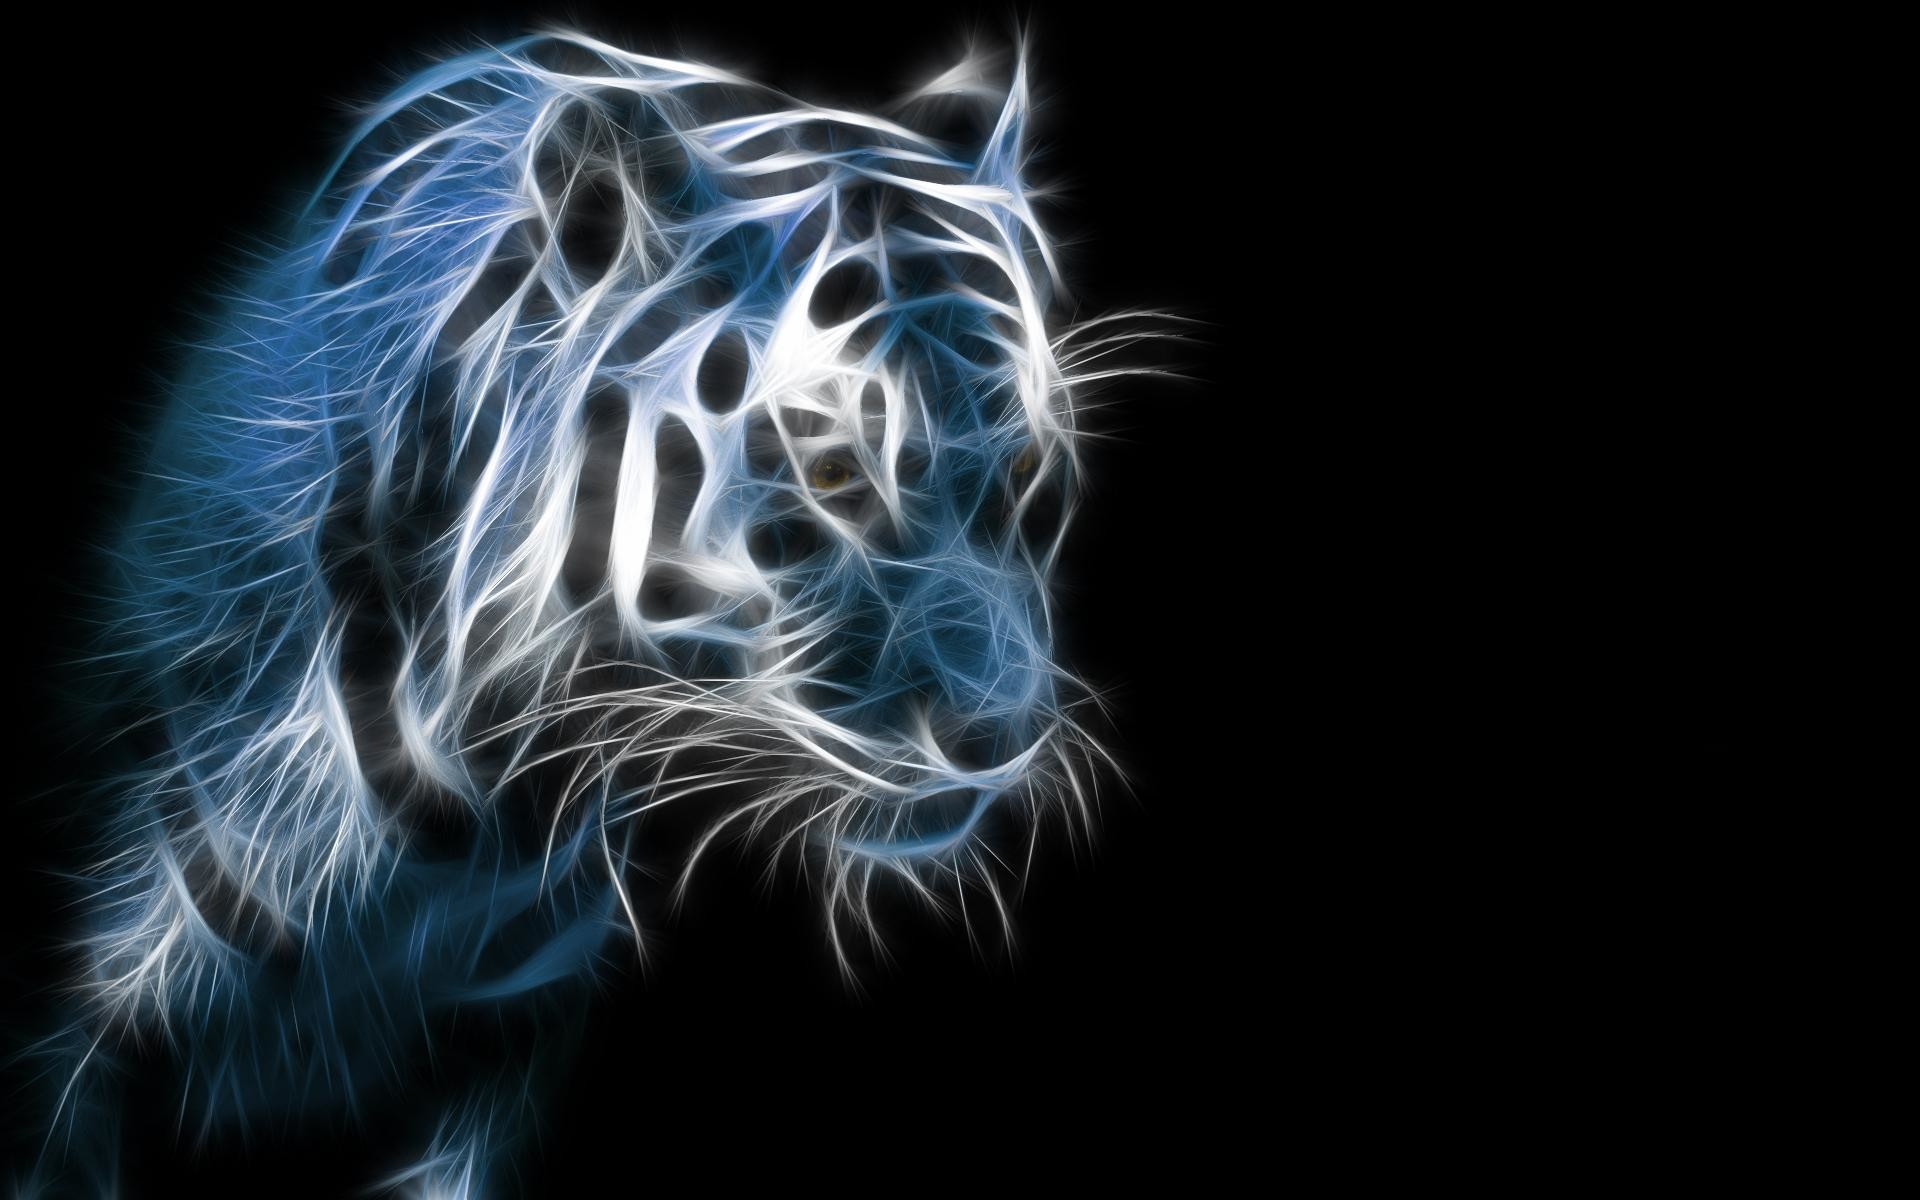 neon tiger wallpaper 65 images